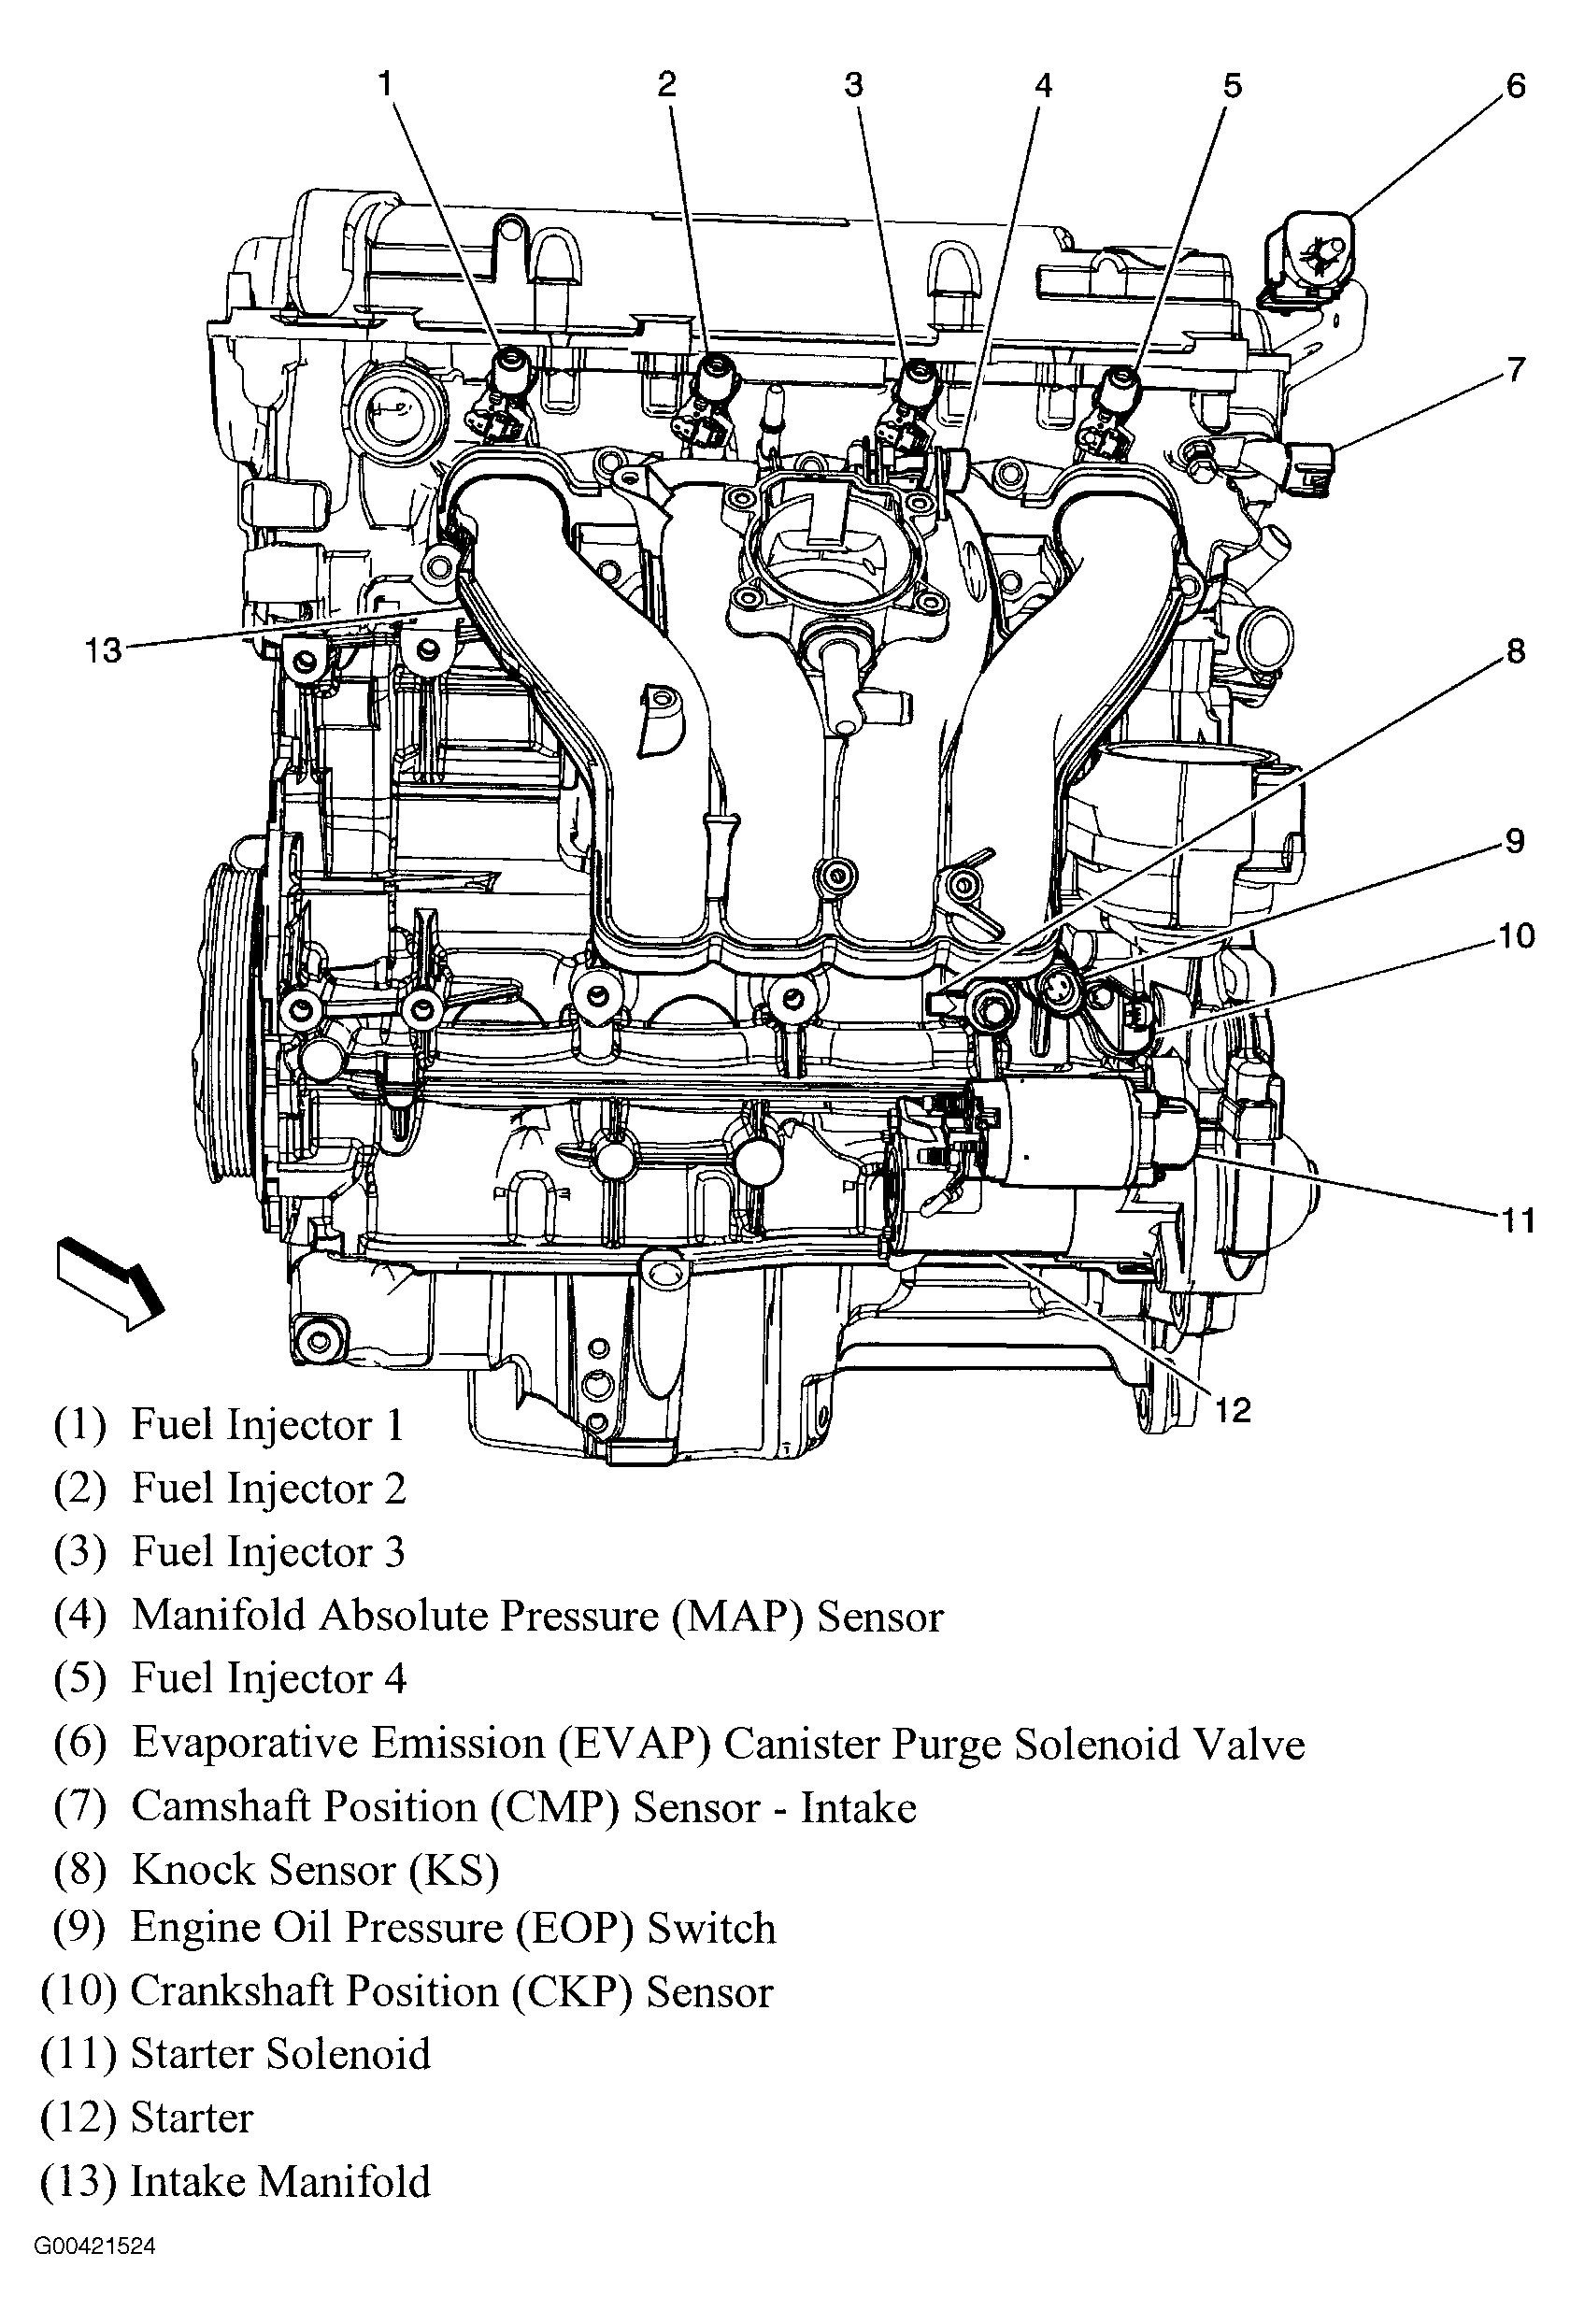 Wiring Diagram Chevrolet Hhr And Schematics 2007 Engine Product Diagrams U2022 Rh Wiringdiagramapp Today 2006 Parts Chevy